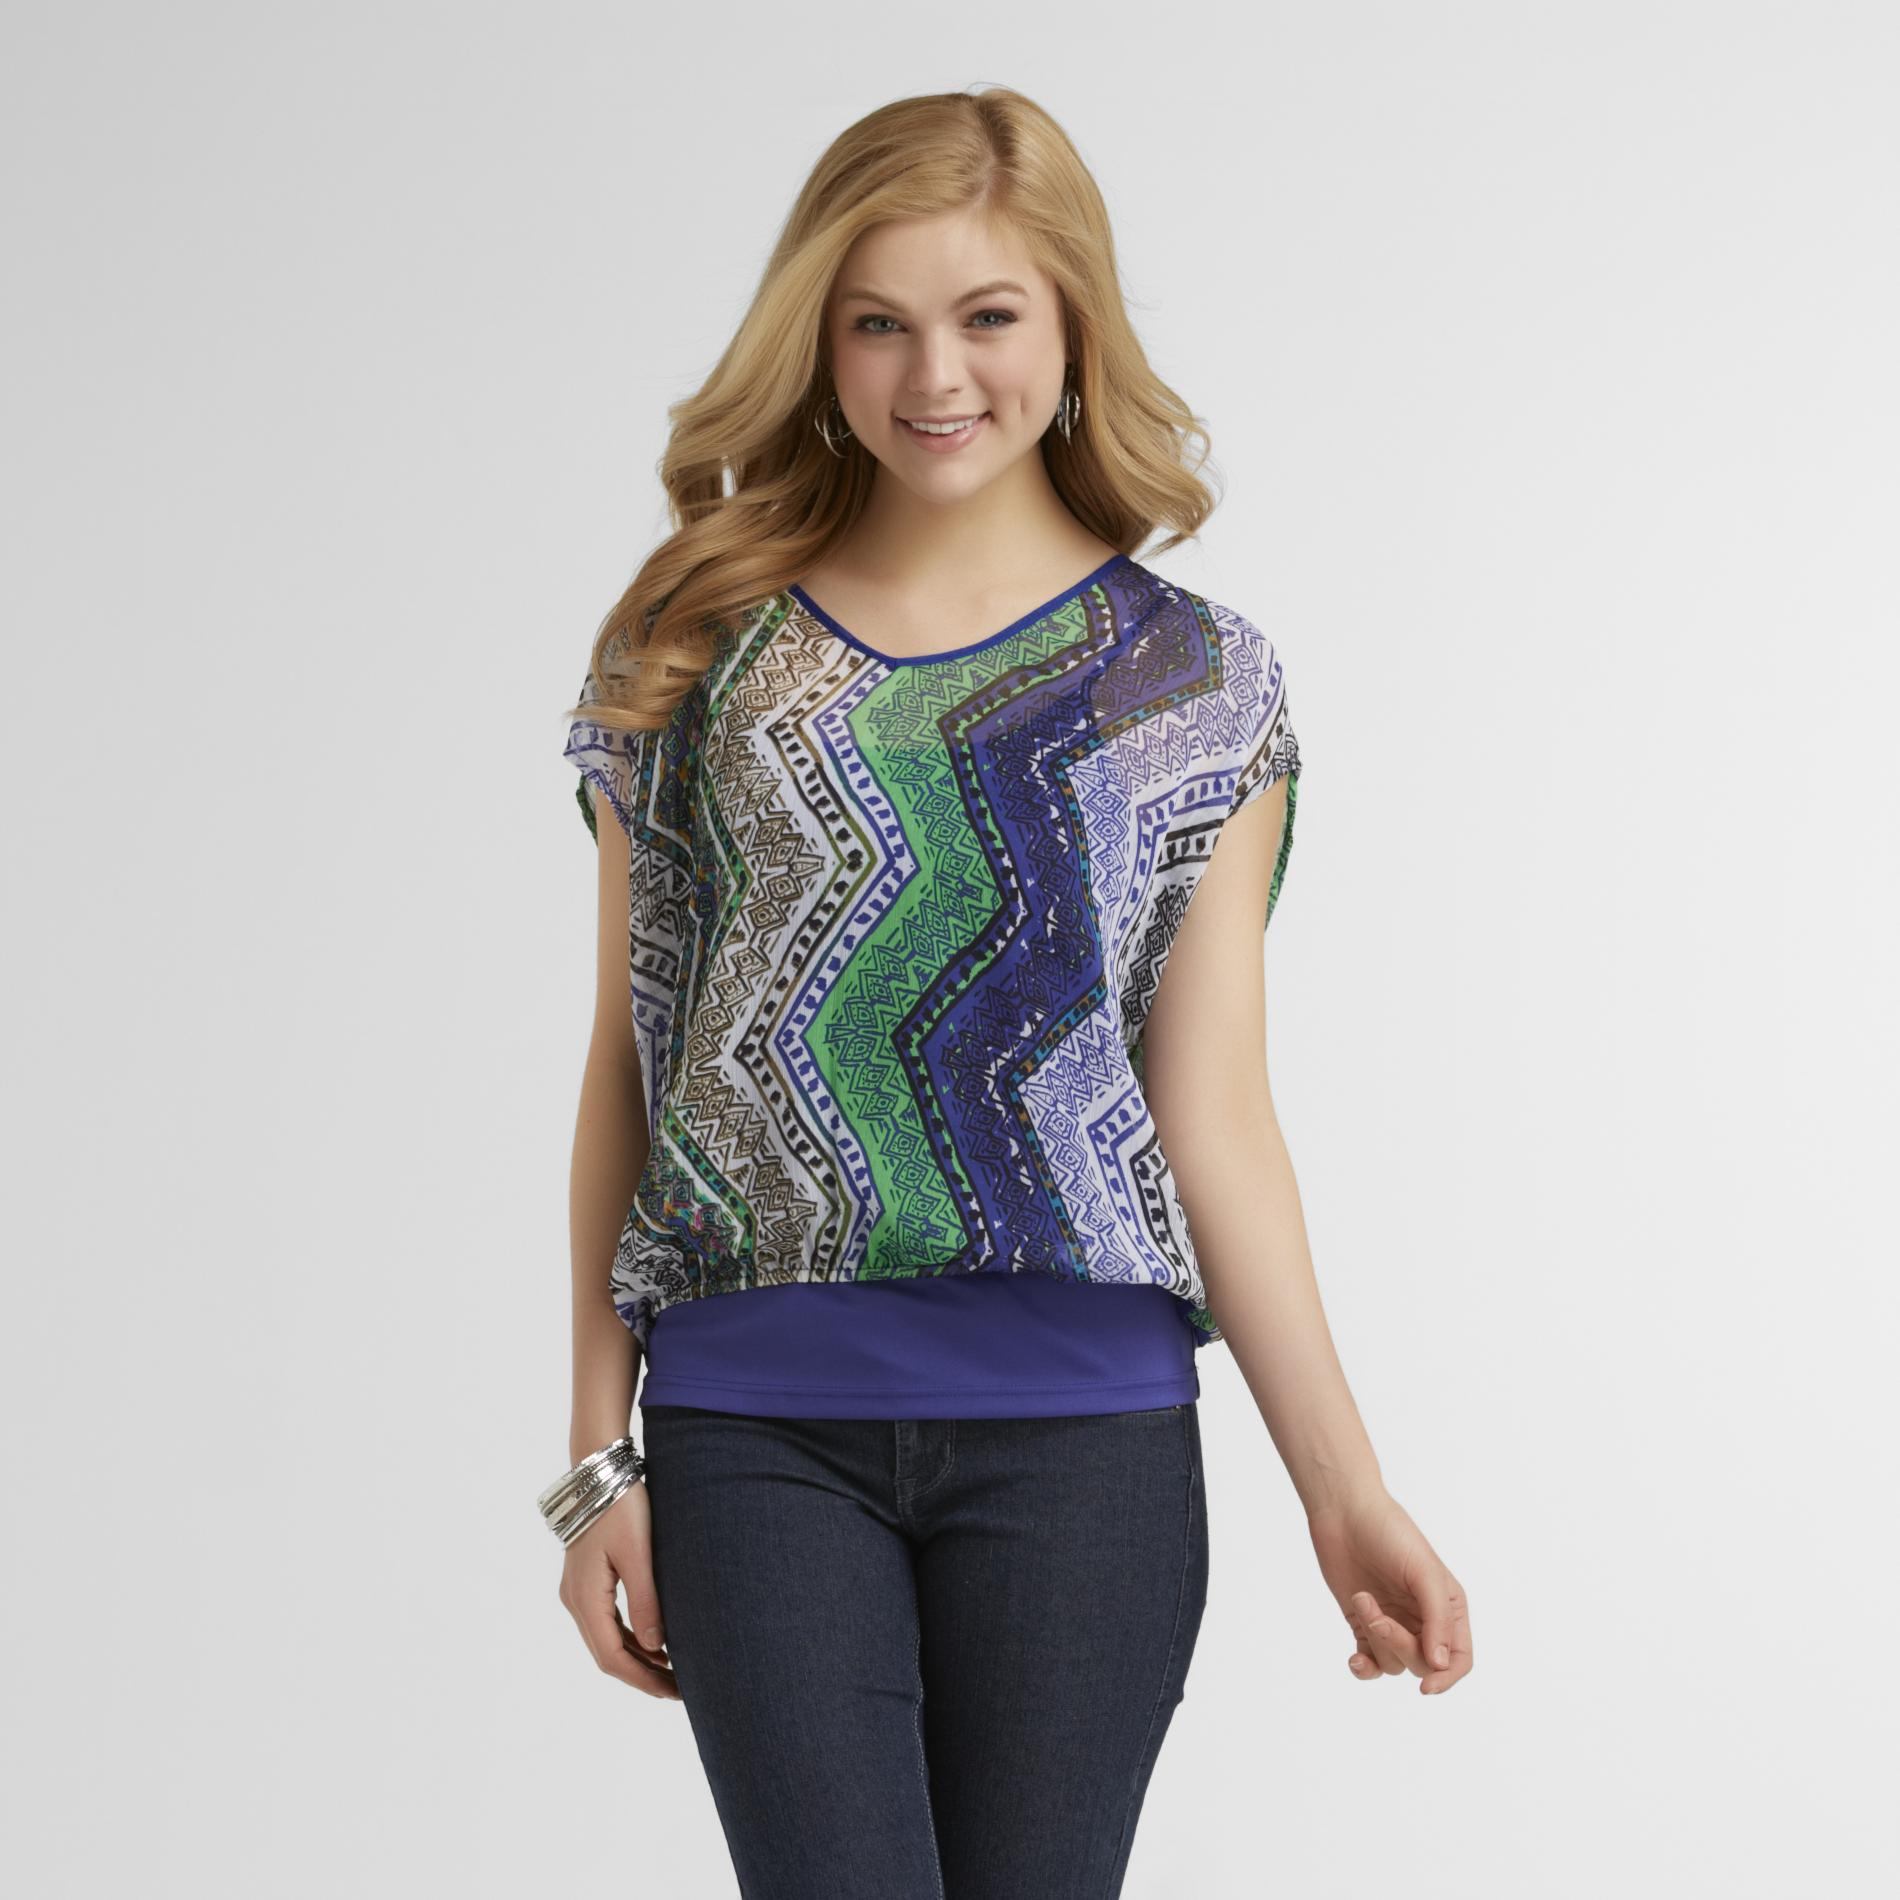 Route 66 Women's Cami & Cutout Top - Tribal Print at Kmart.com